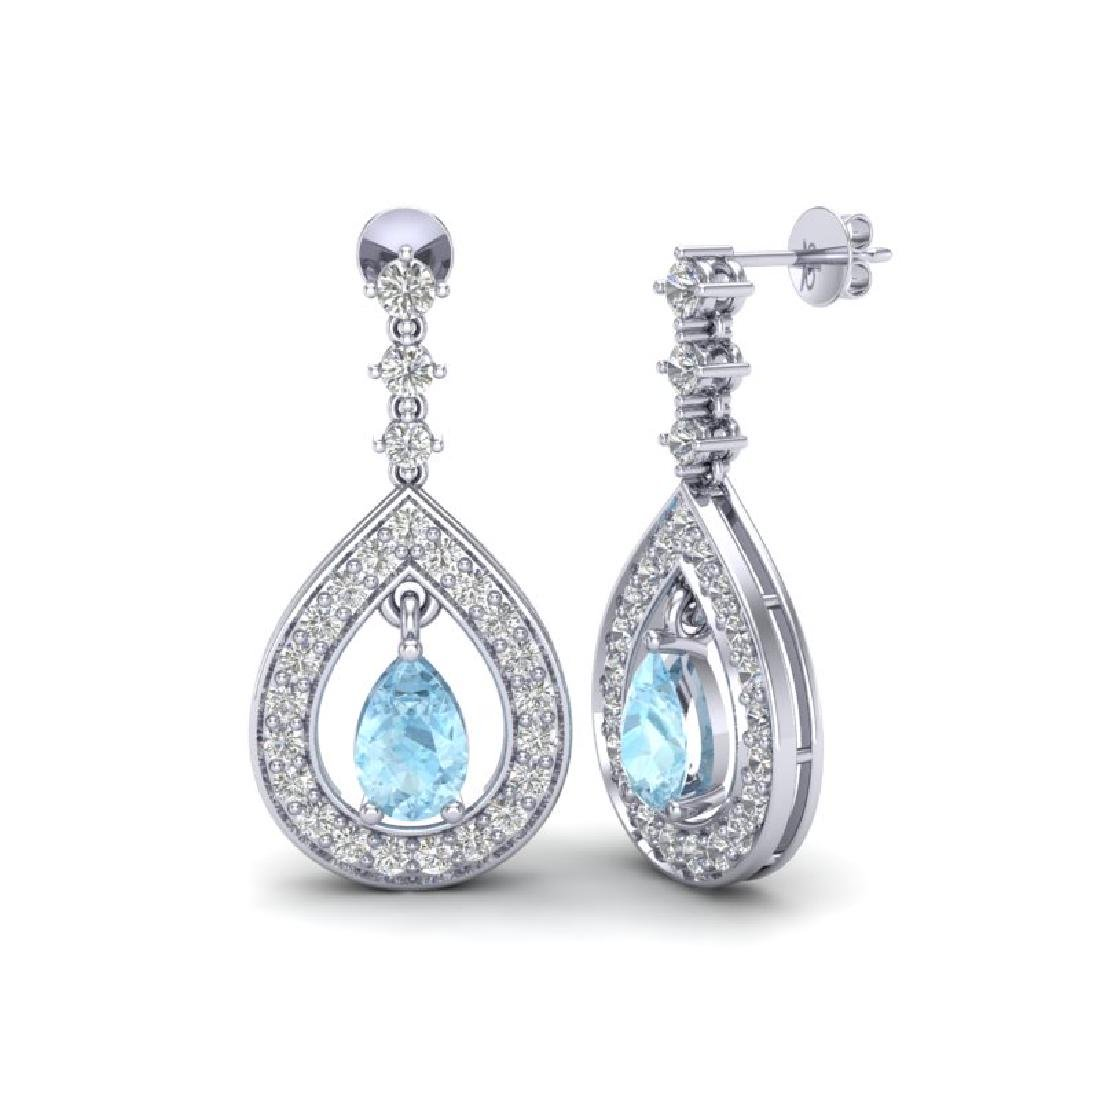 2.25 CTW Aquamarine & Micro Pave VS/SI Diamond Earrings - 2